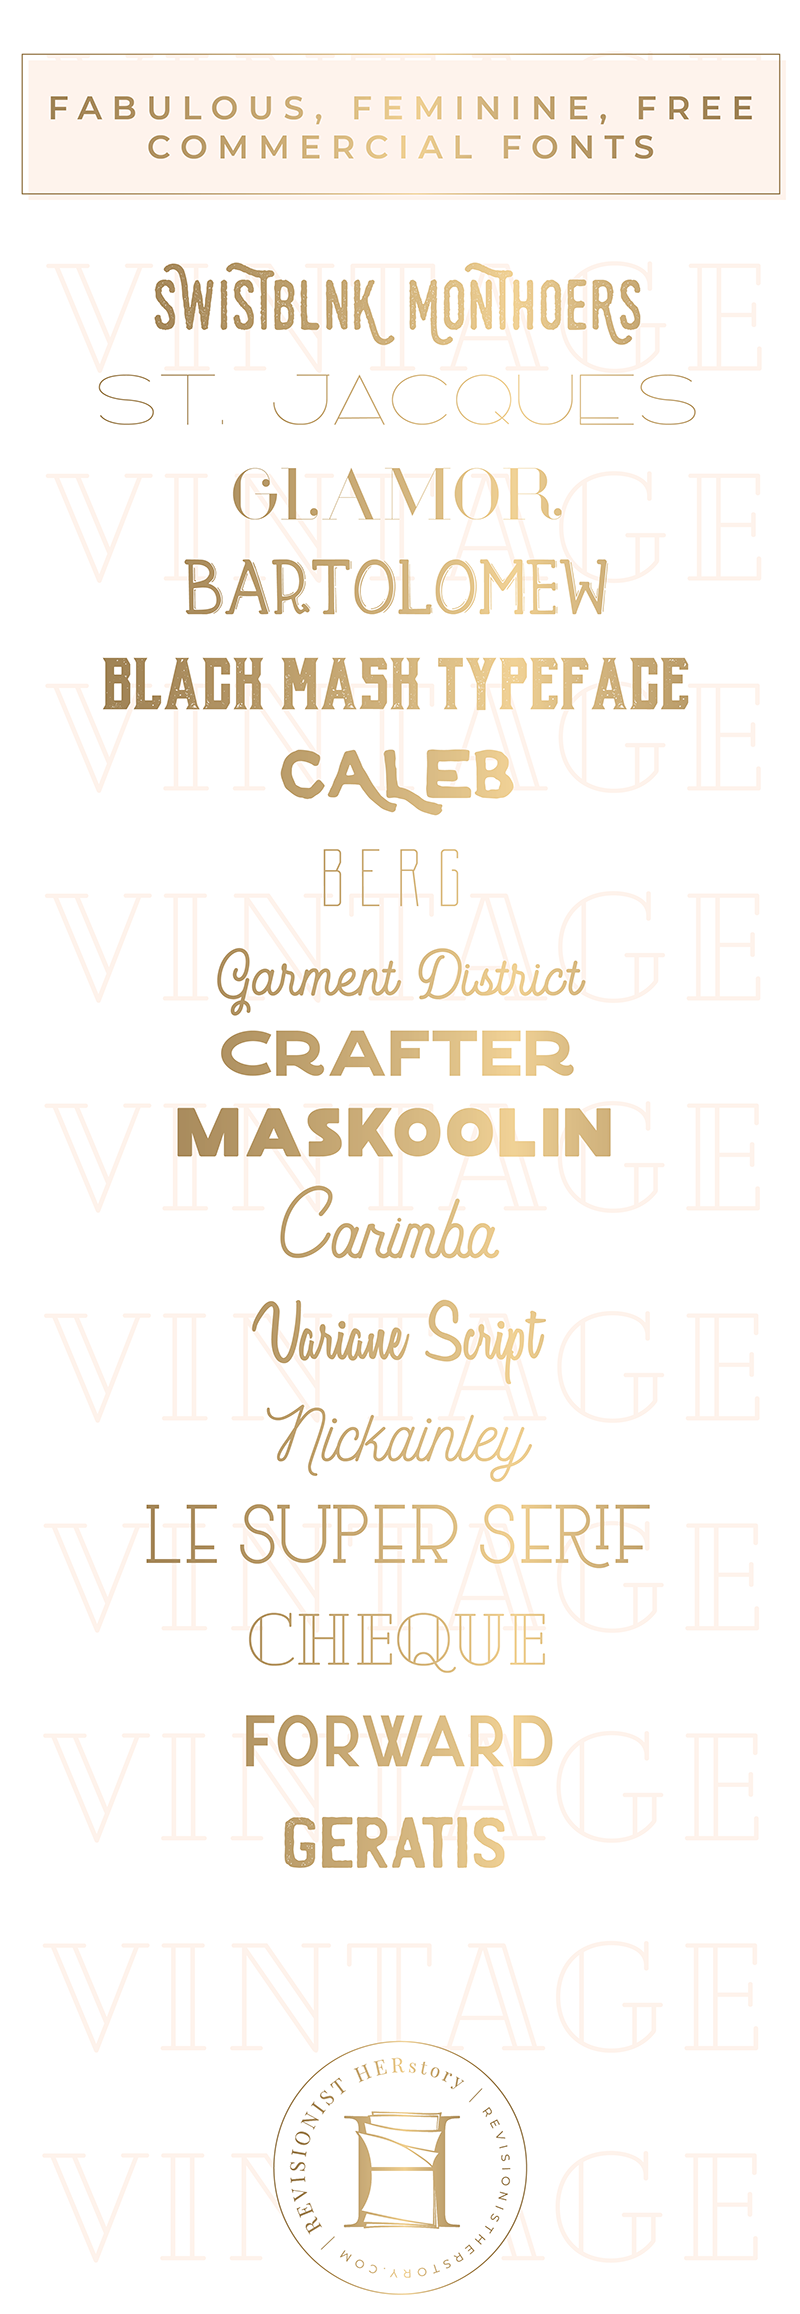 The Best Free Vintage Fonts For Commercial Use In 2018 Vintage Fonts Free Commercial Fonts Commercial Fonts